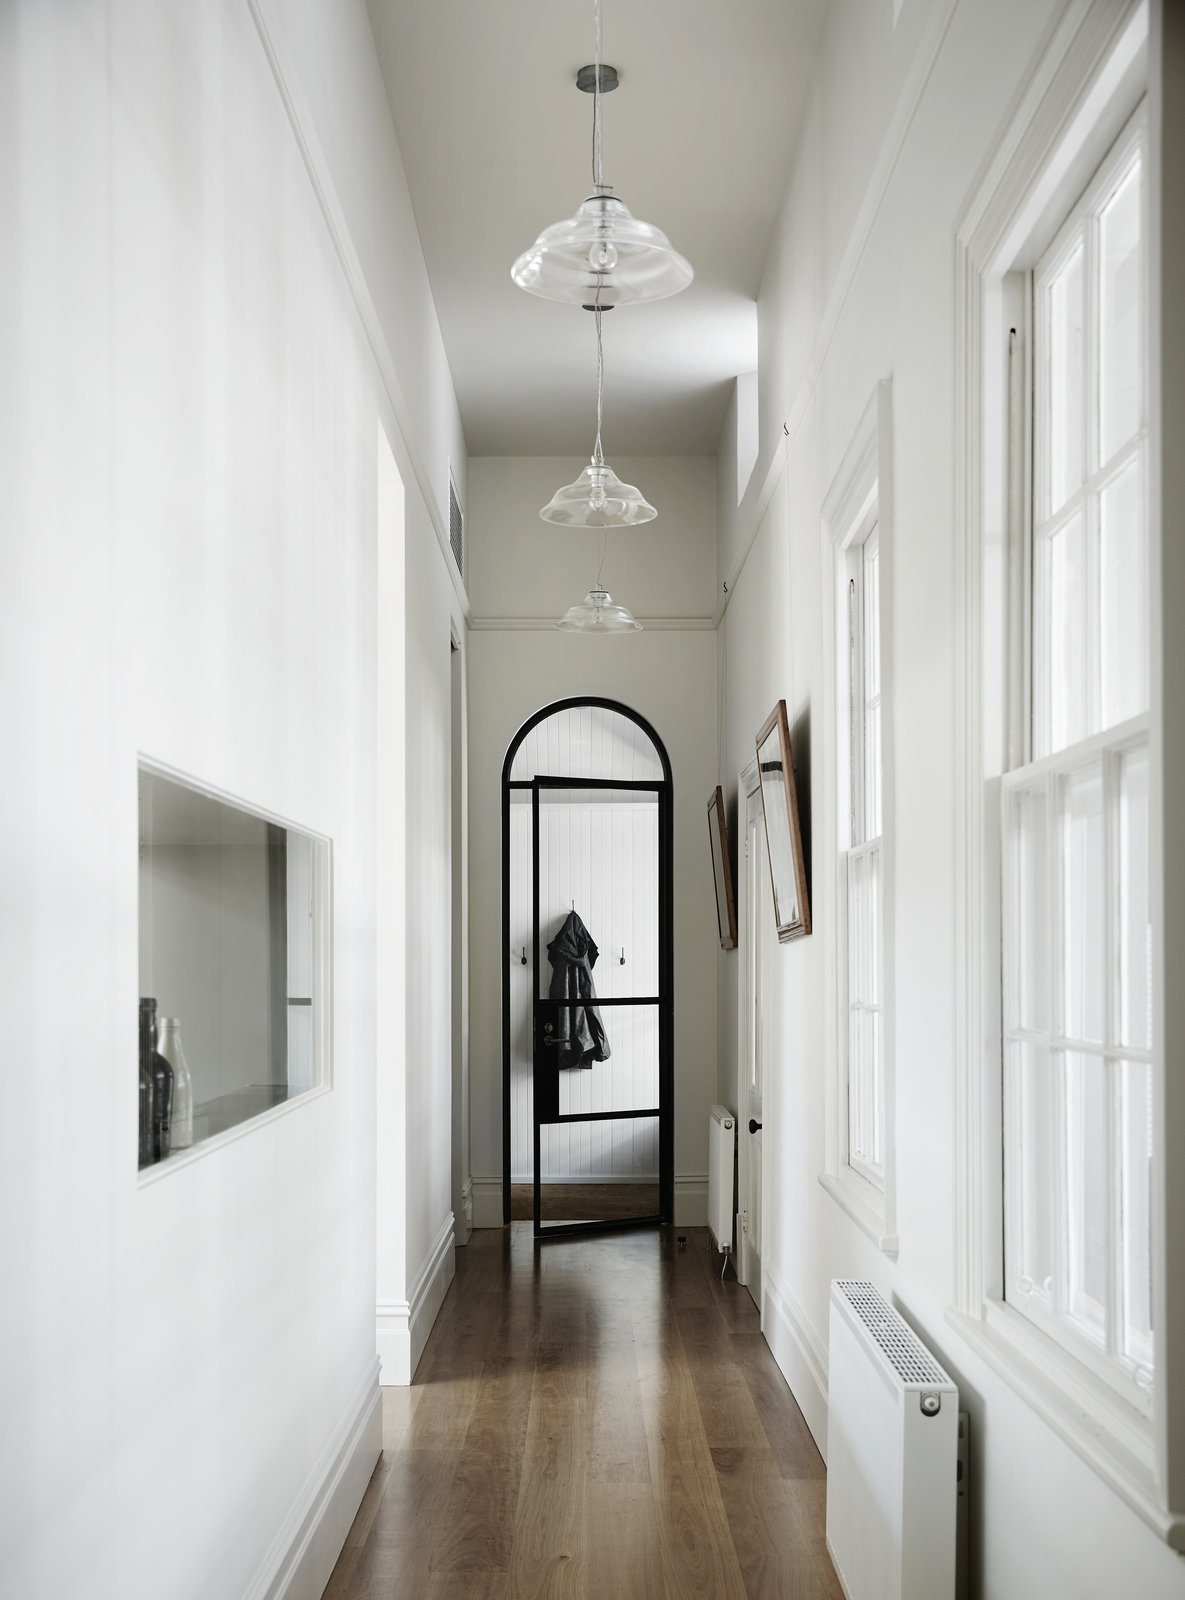 Hallway and Medium Hardwood This view shows how the steel-framed glass was elegantly melded with historic architectural details like the arched hallway opening.  Best Hallway Medium Hardwood Photos from Light Floods This Dazzling Renovated Victorian in Australia